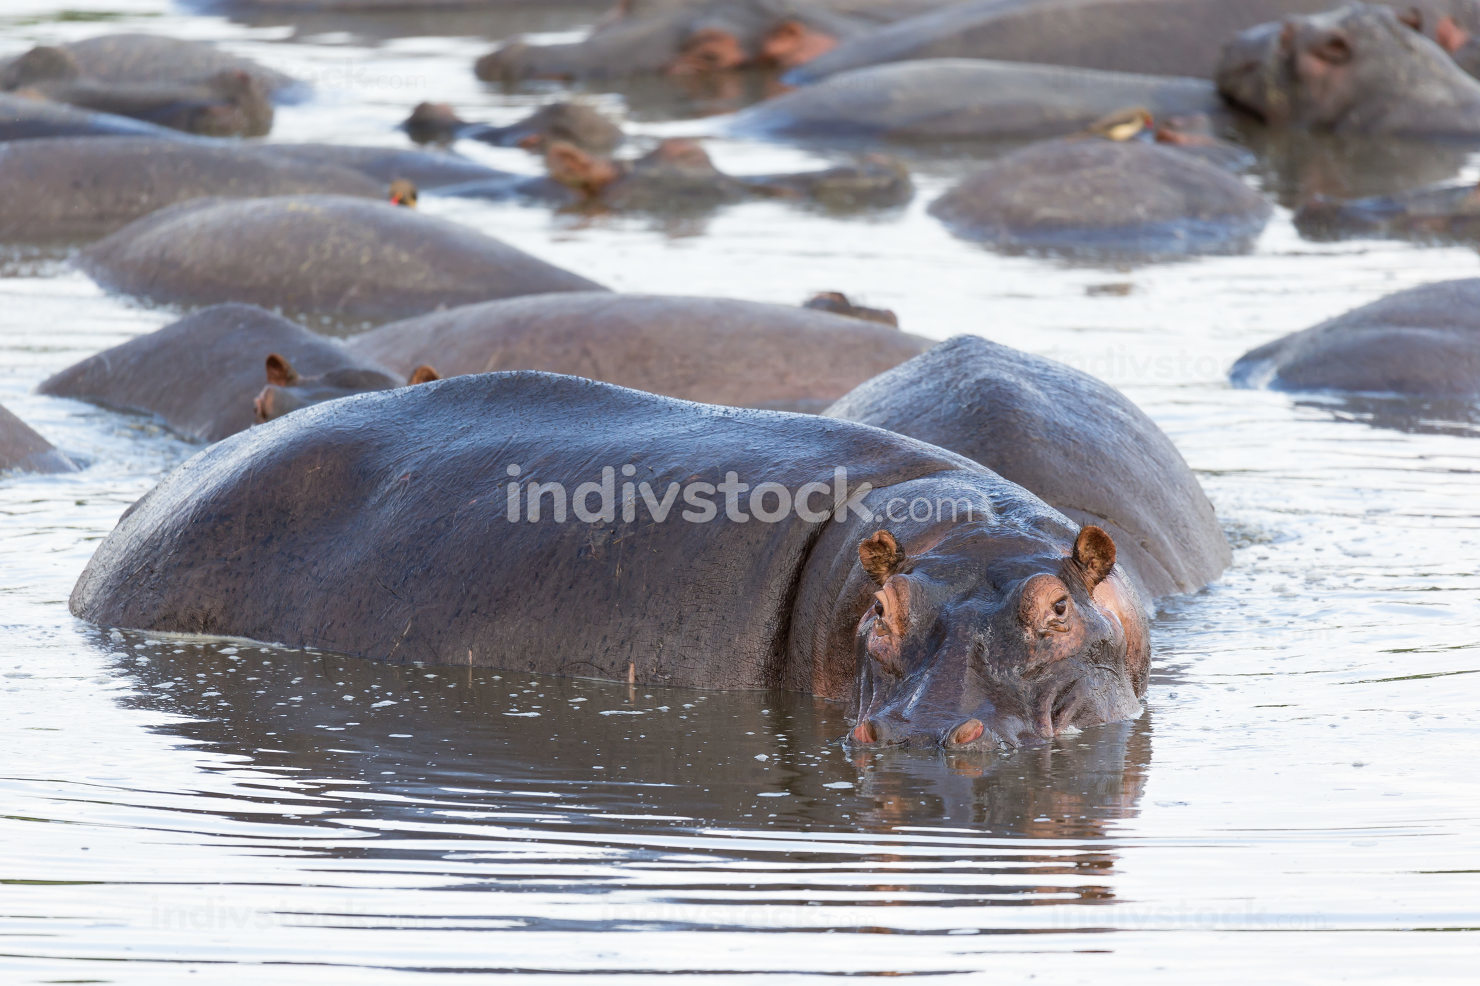 A hippopotamus sits in the water of a lake